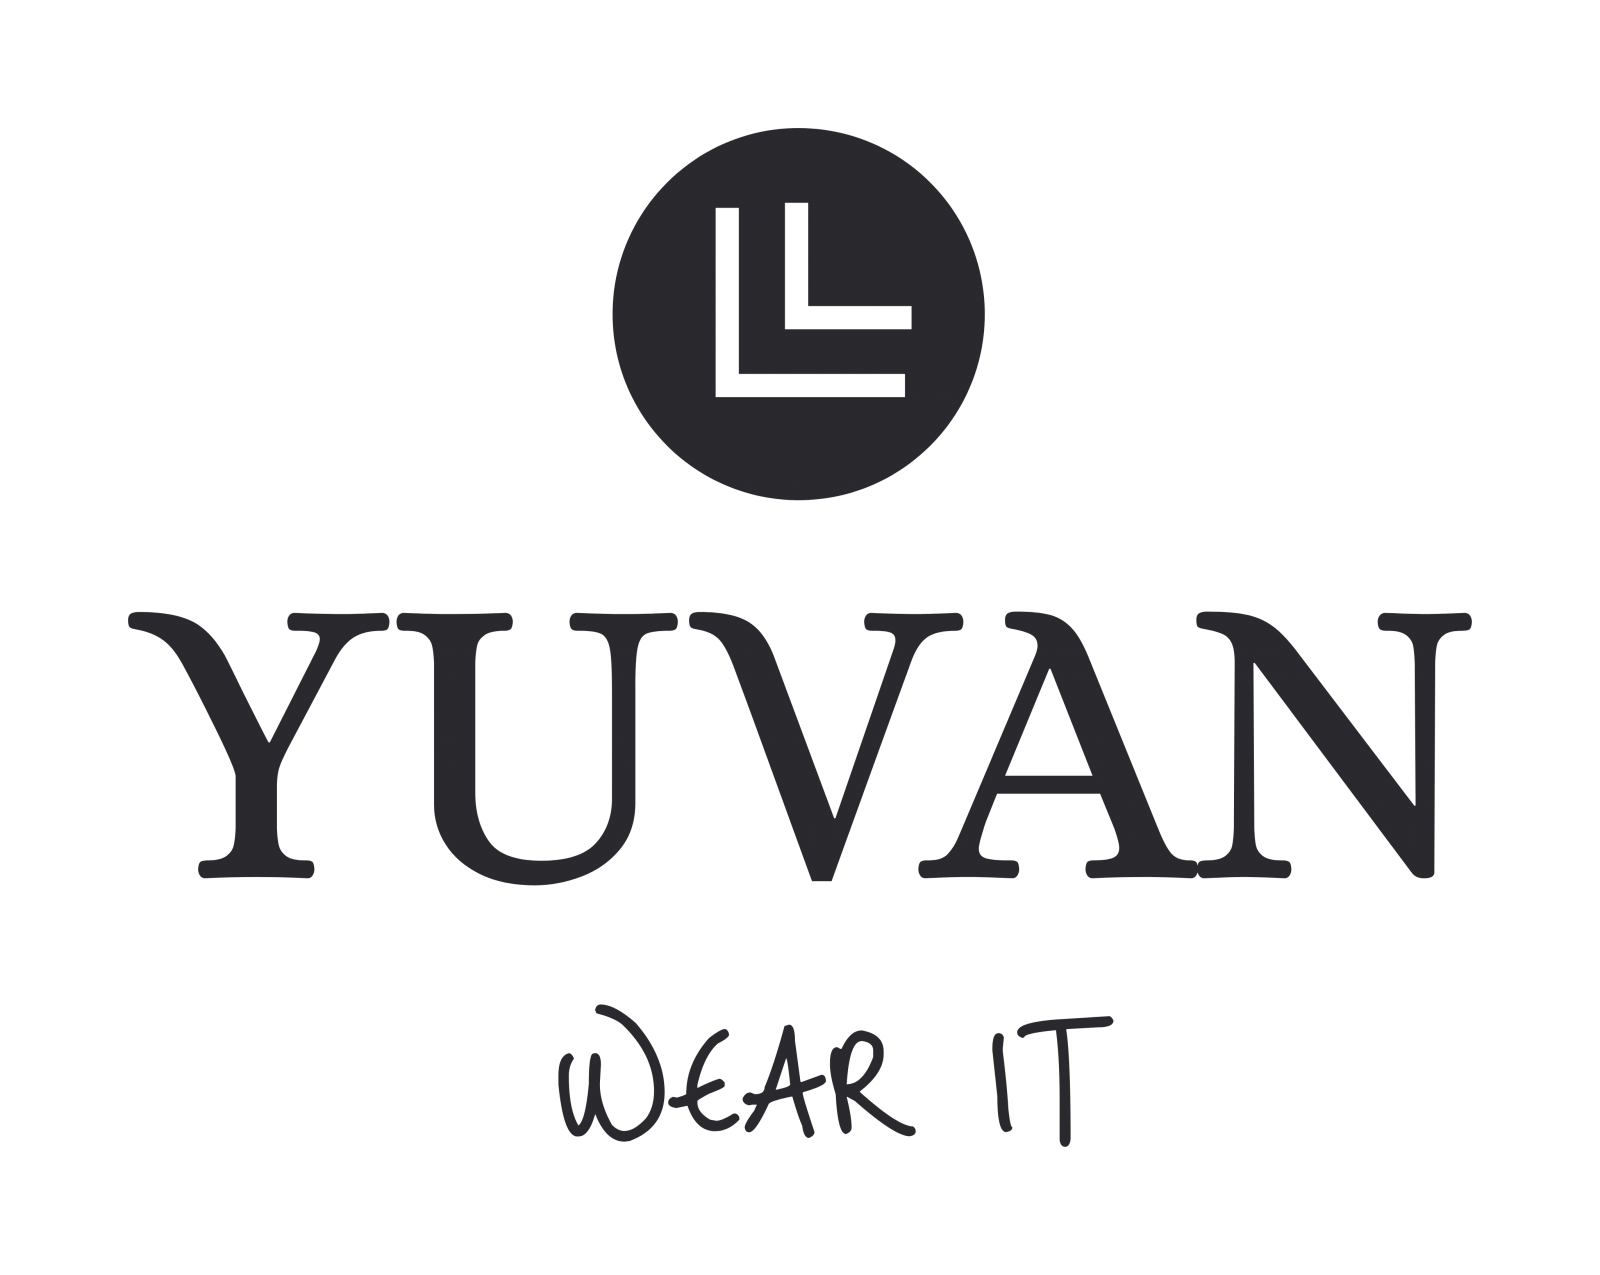 Yuvan Wear It